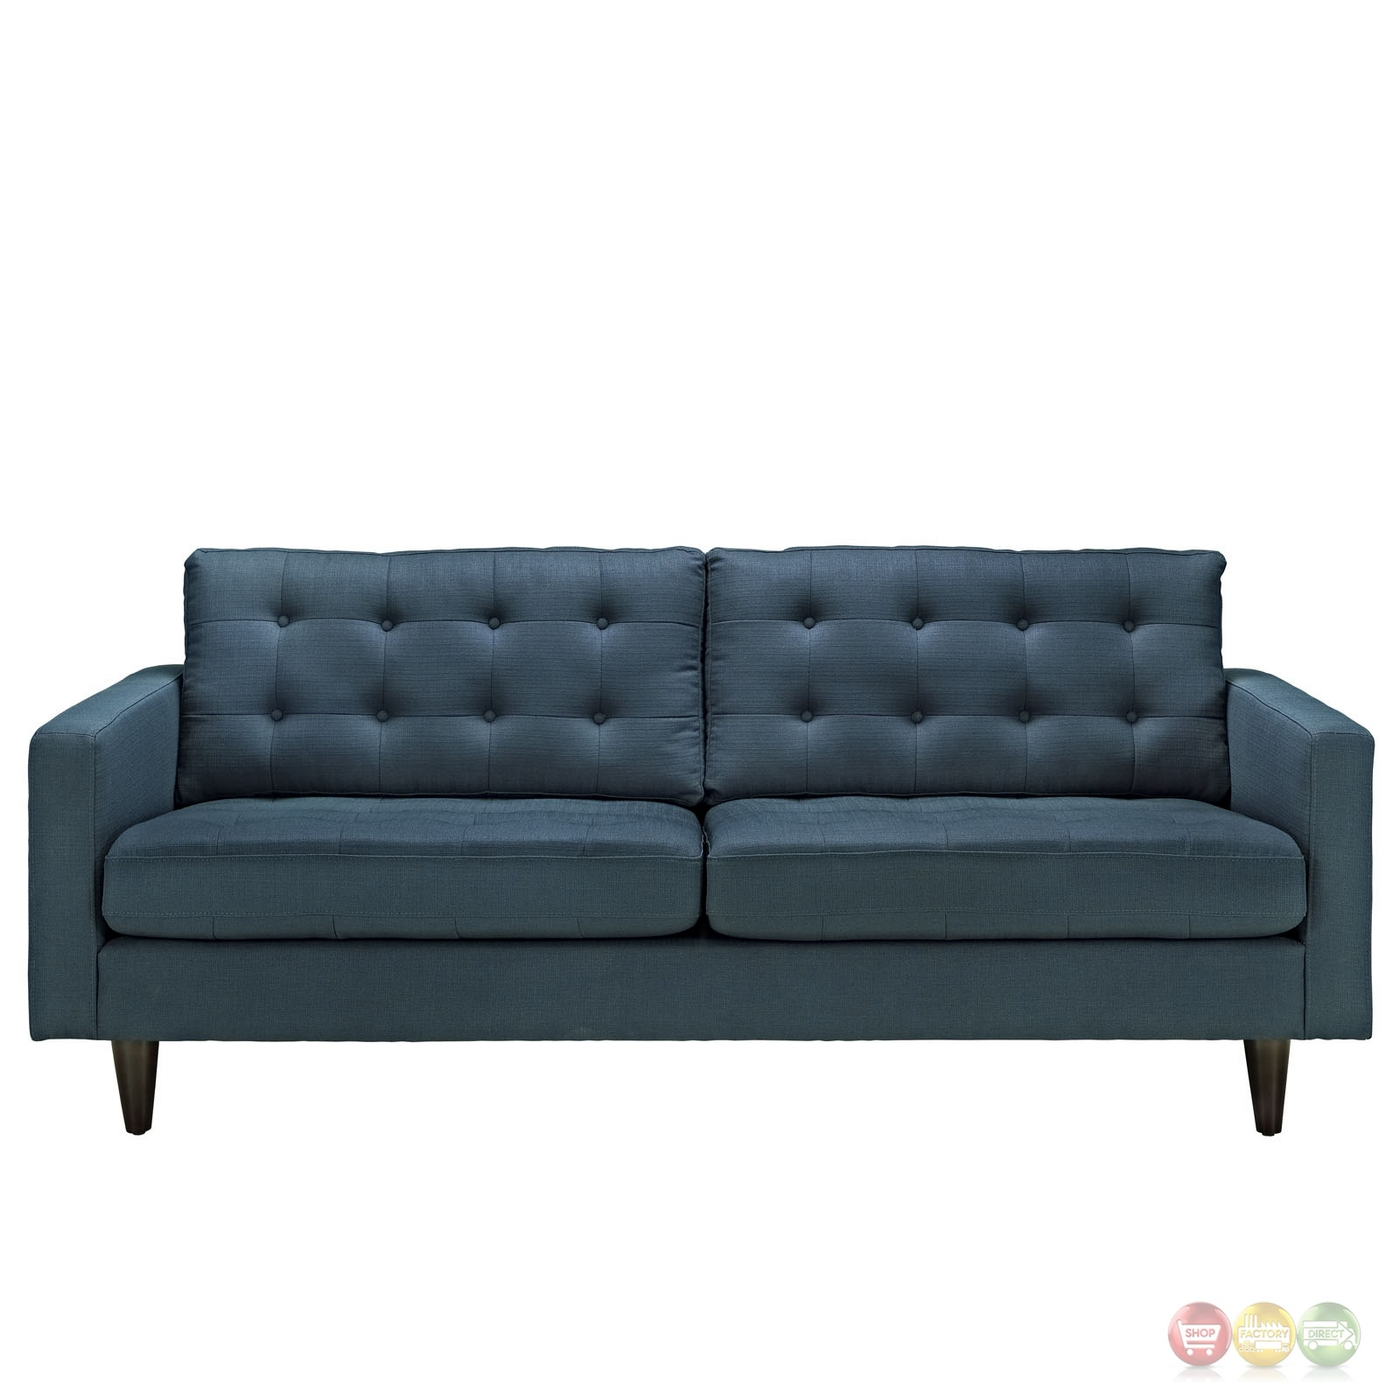 Empress contemporary button tufted upholstered sofa azure for Stylish furniture